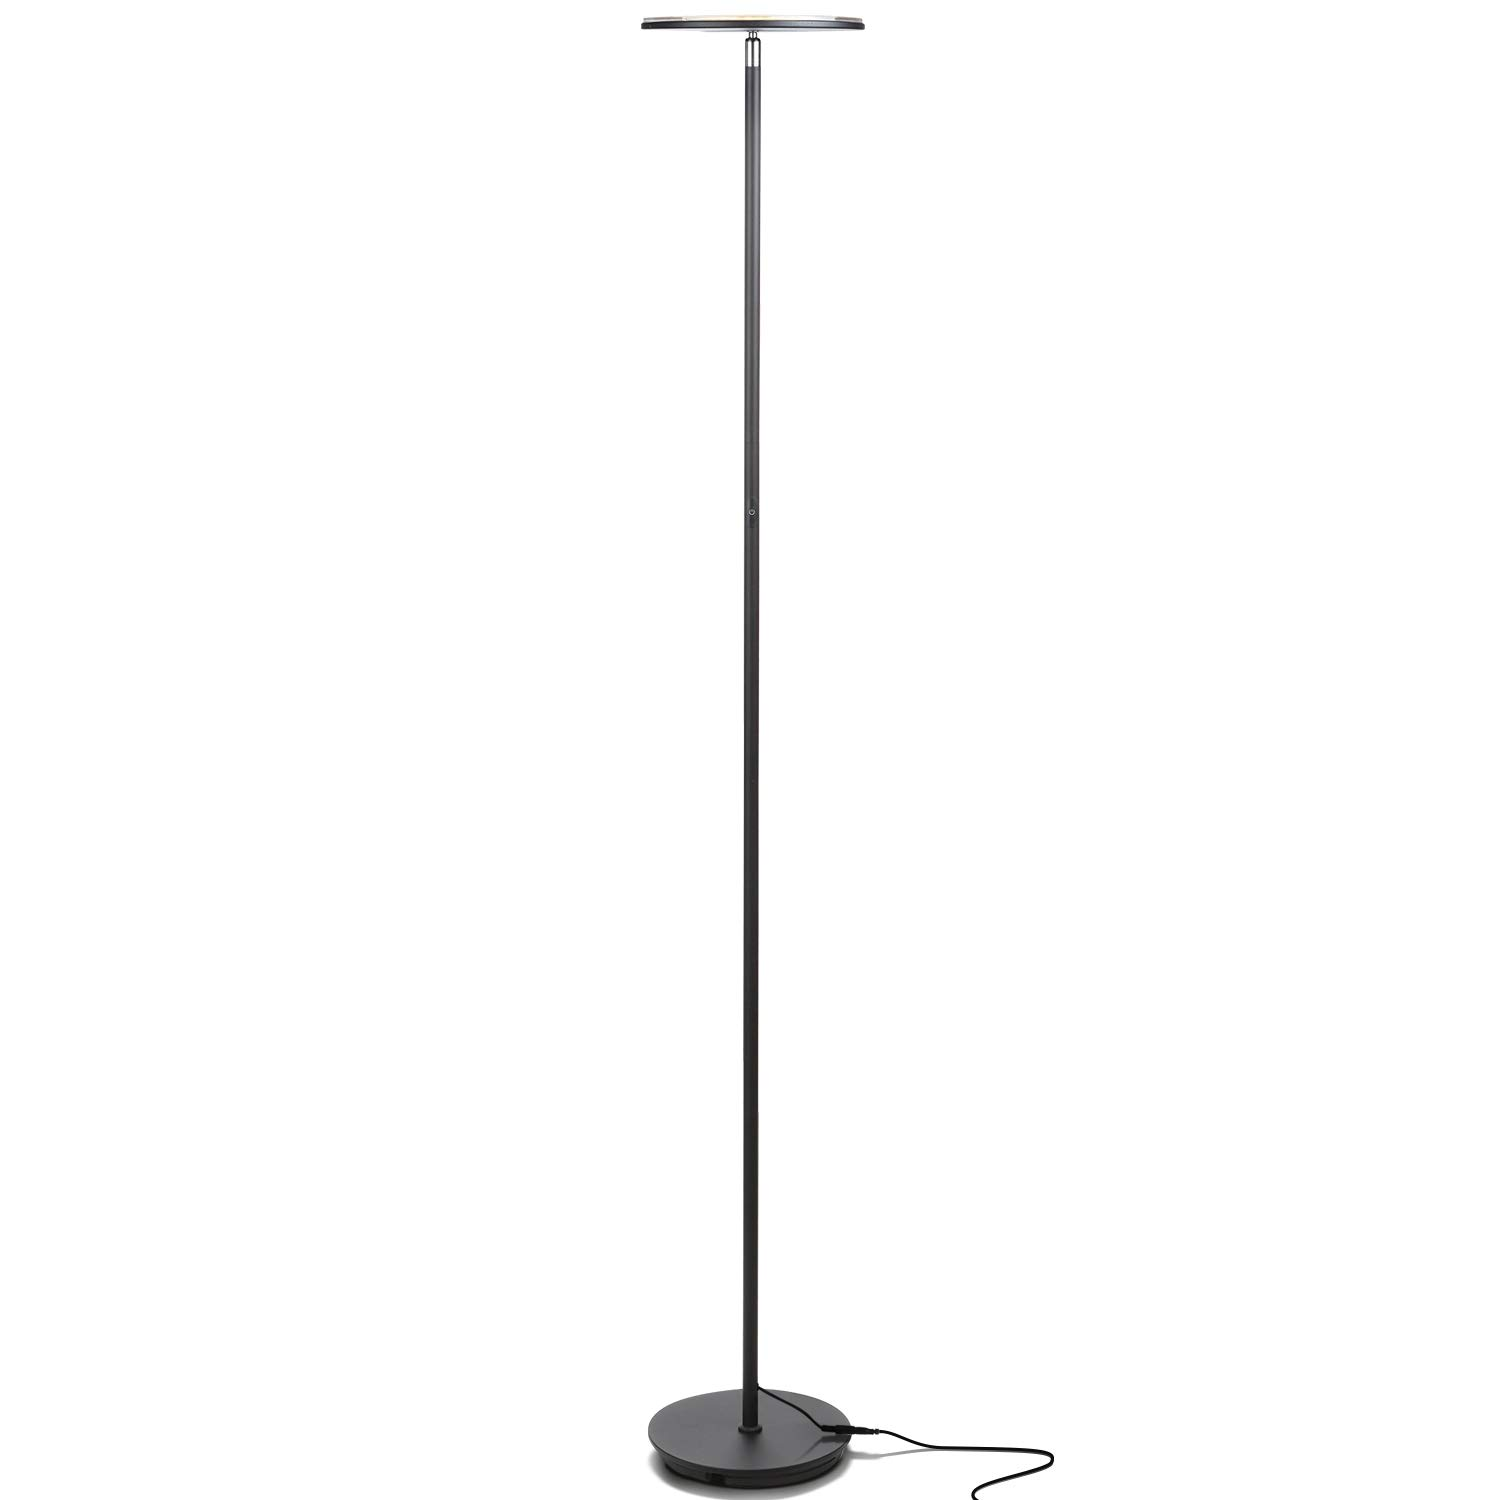 Brightech Sky Flux - Modern LED Torchiere Floor Lamp for Living Rooms & Bedrooms - Tall Pole, Standing Office Torch Lamp - Bright, Minimalist & Contemporary - Dimmable & Adjustable Light - Black